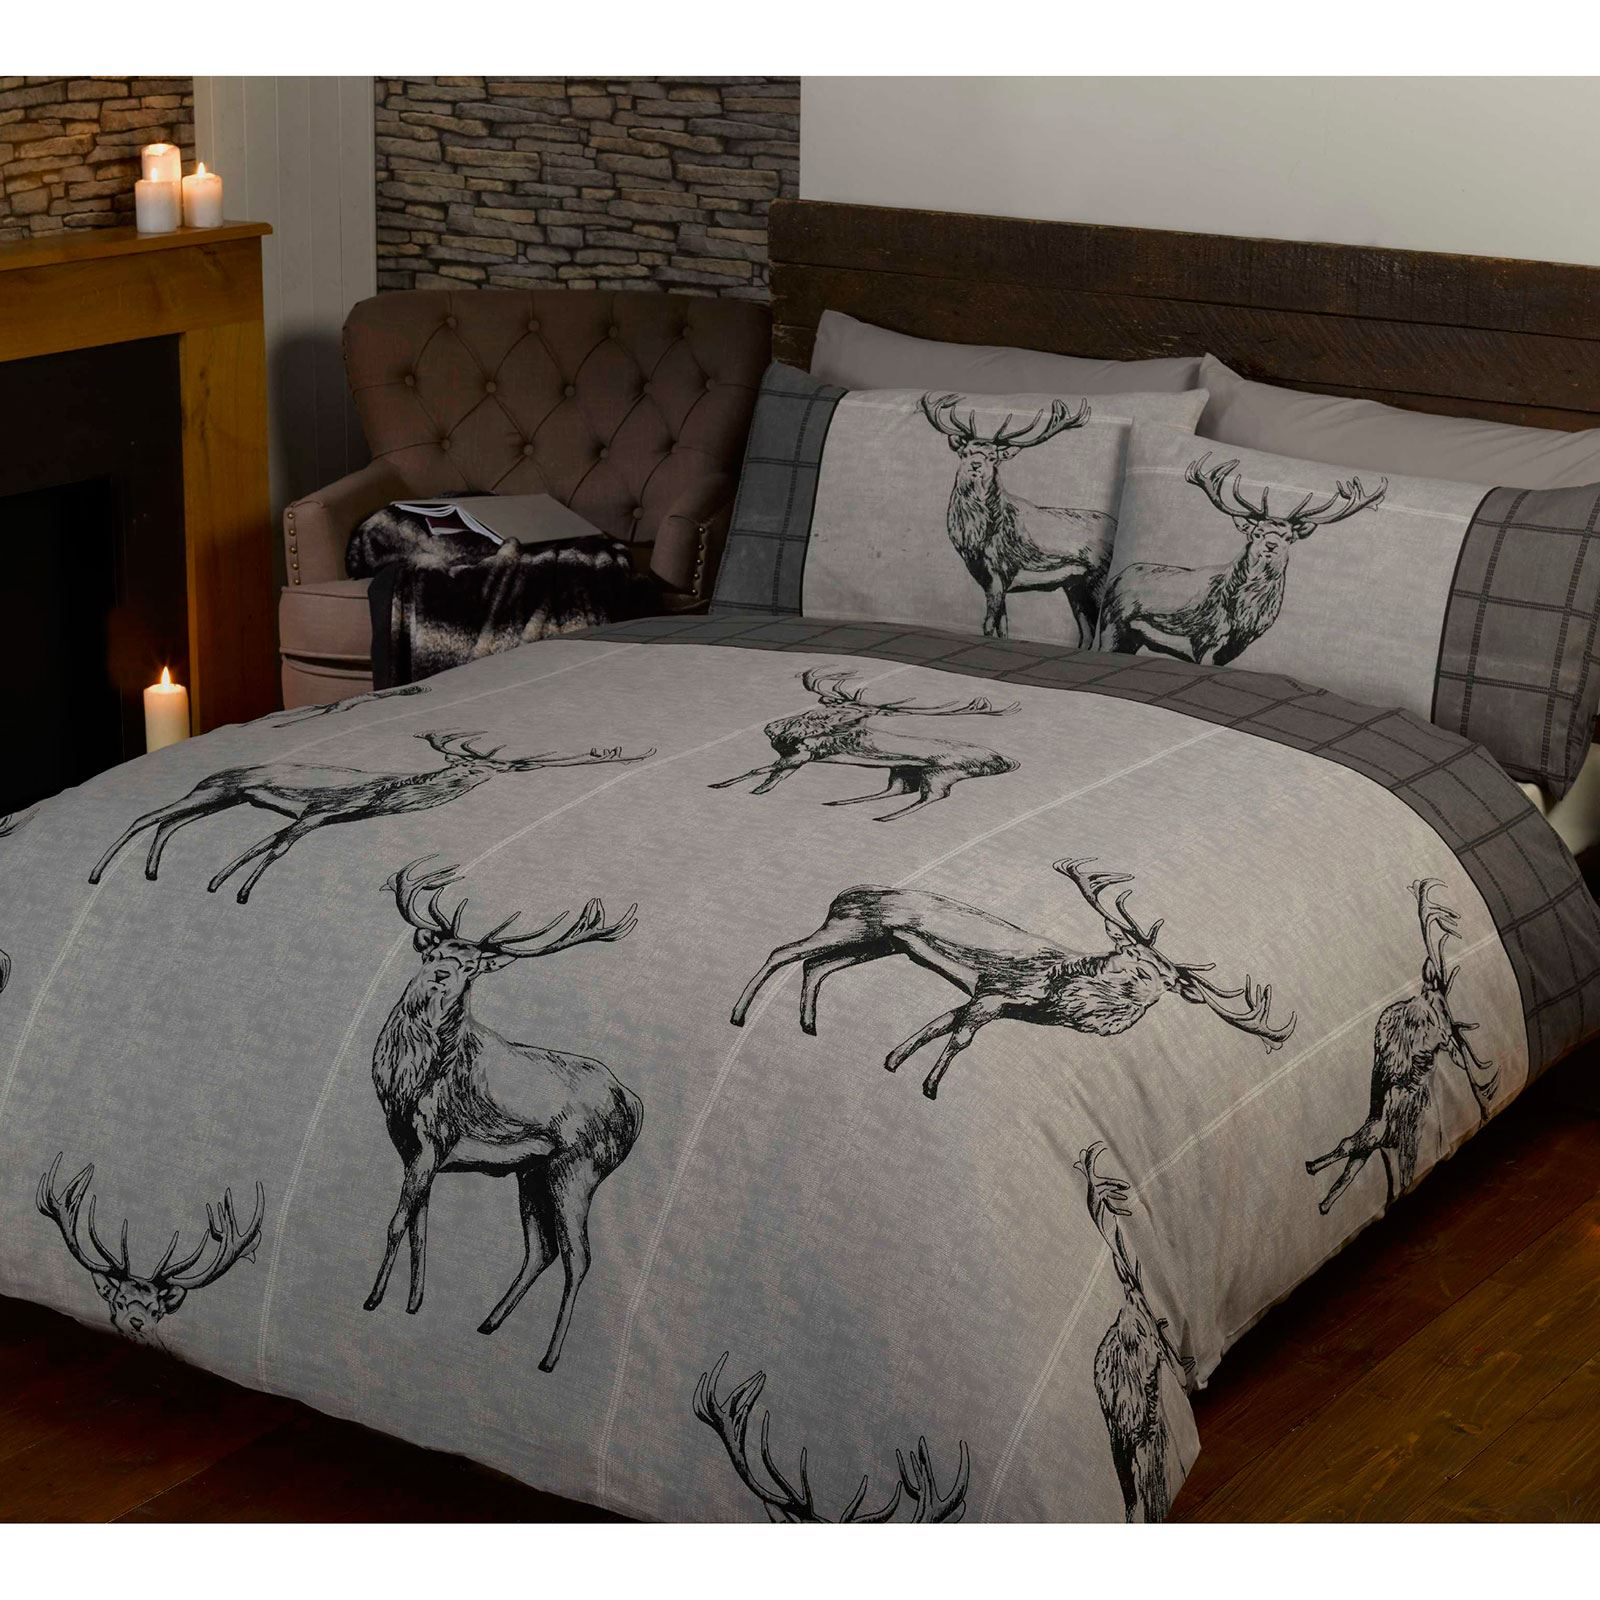 Charcoal Grey Bedding Highland Stag Charcoal Grey Double Duvet Cover